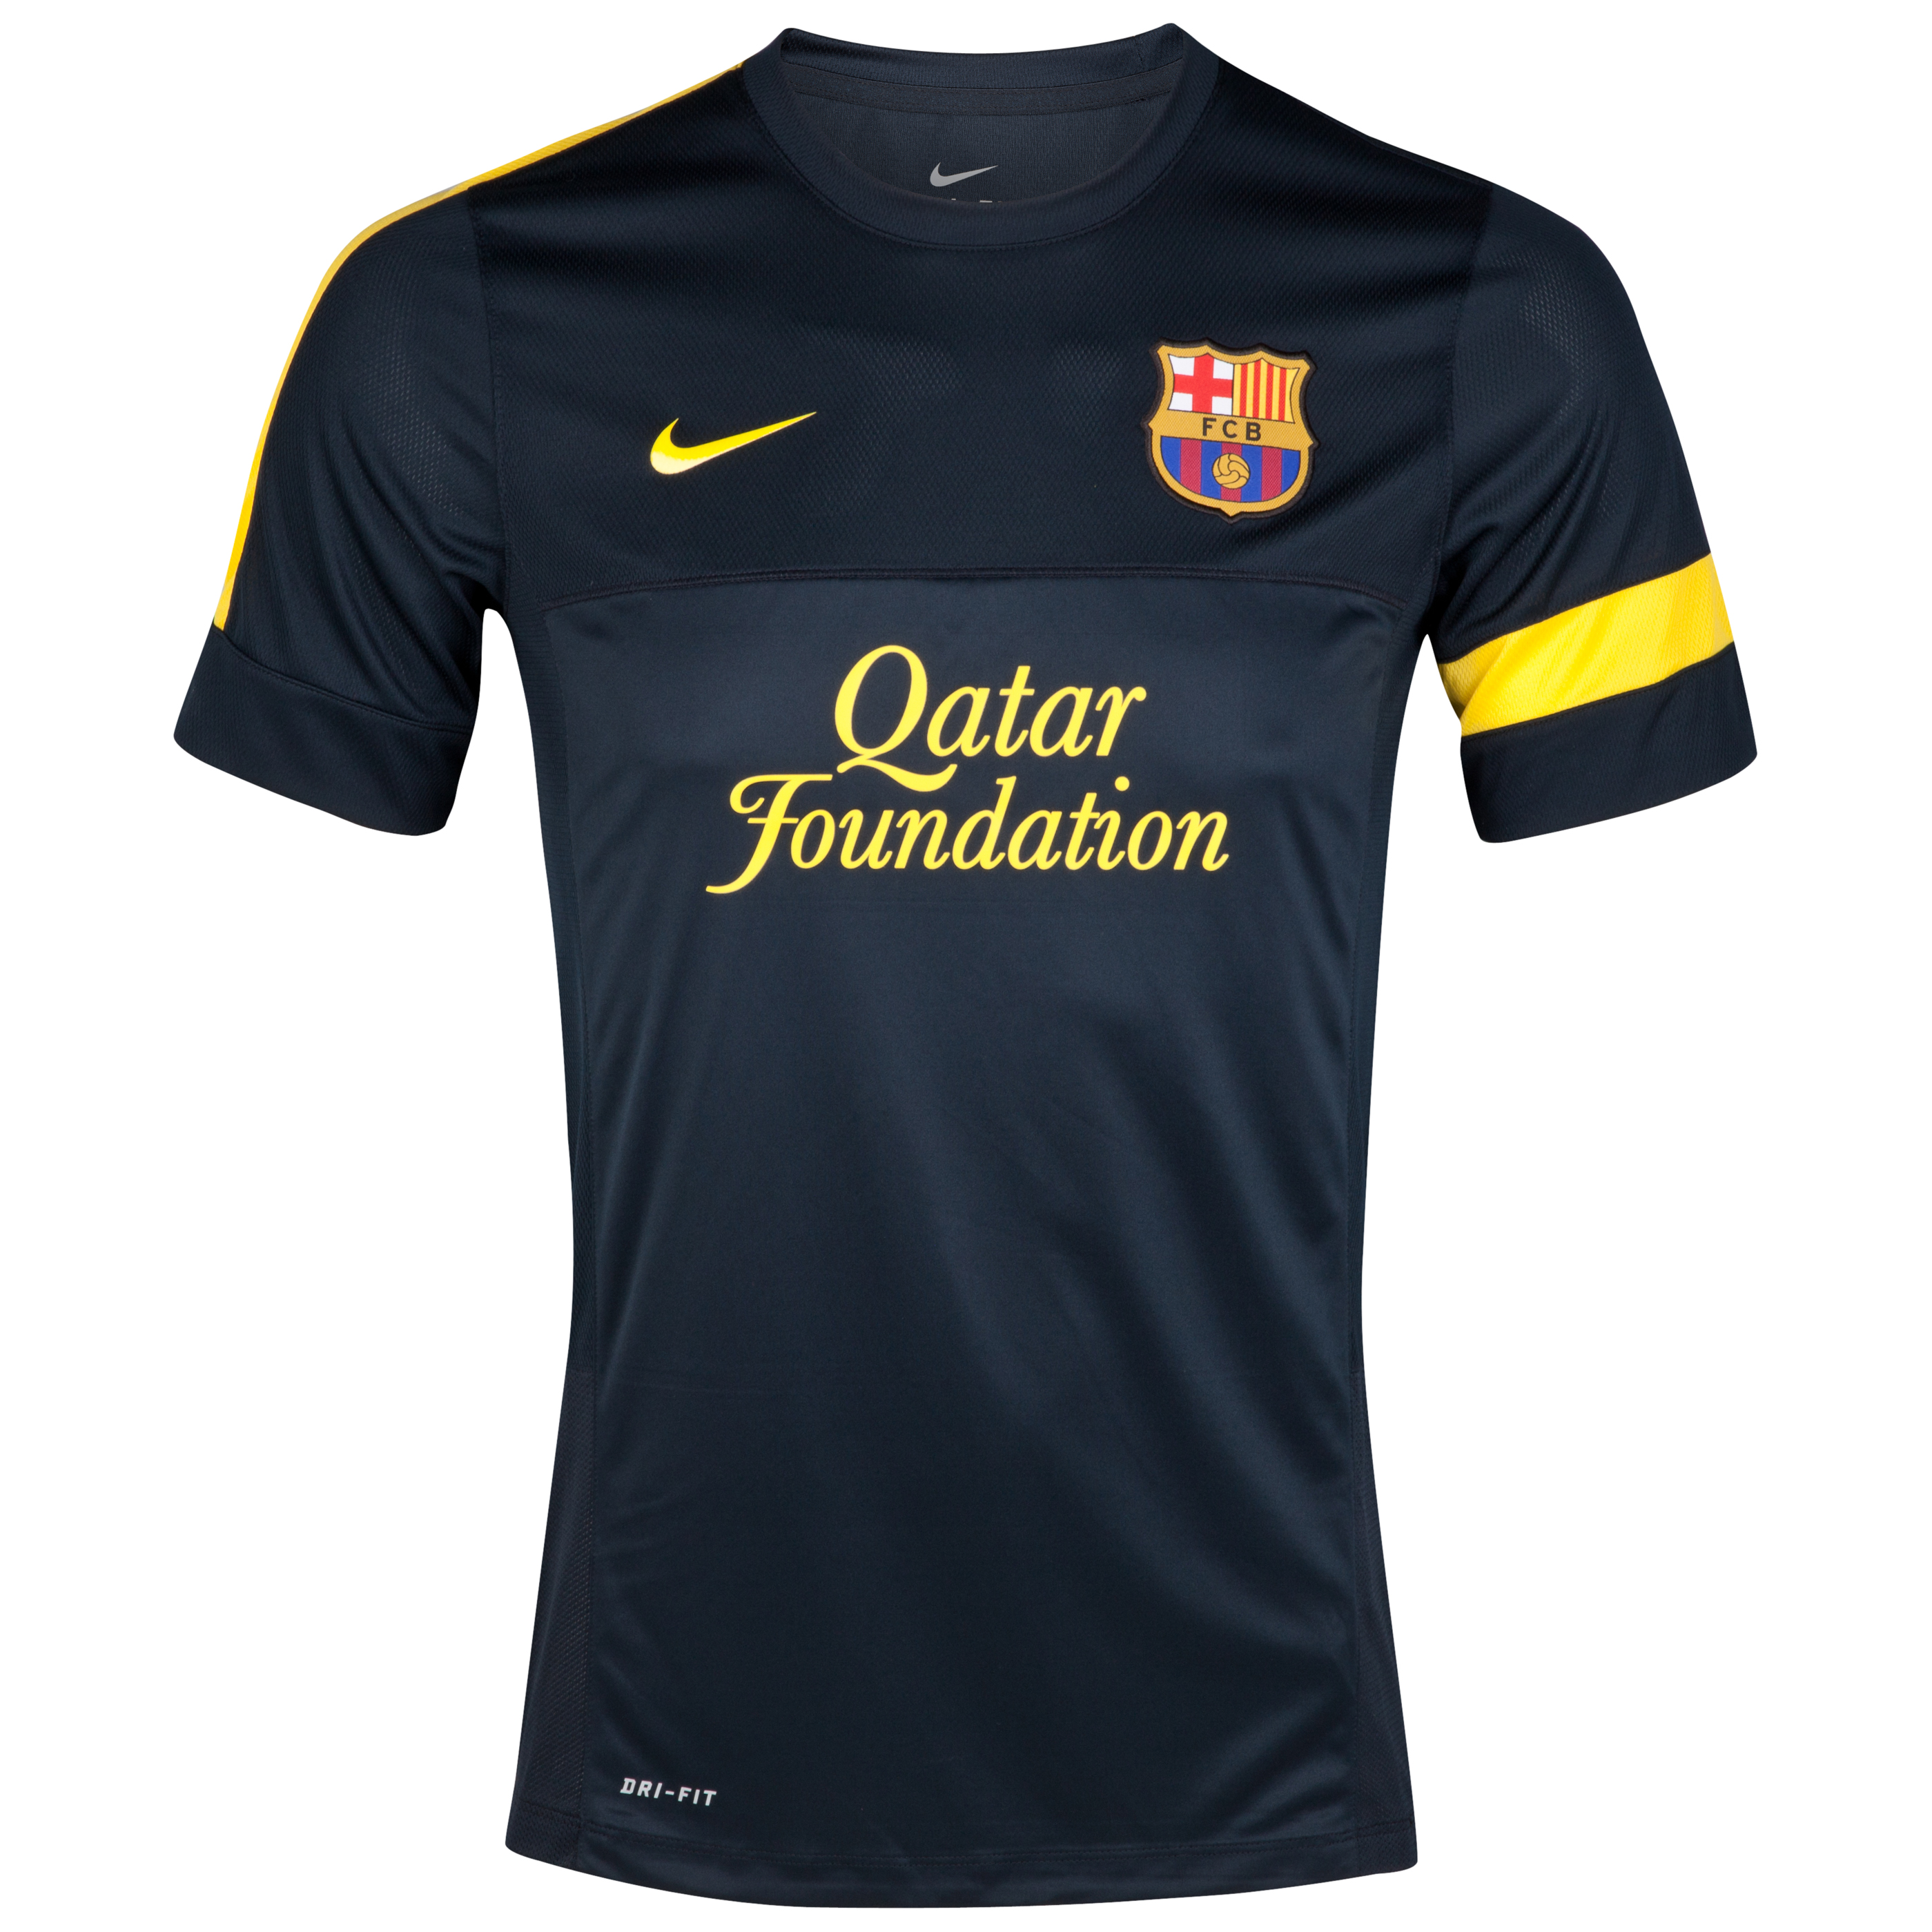 Barcelona Short Sleeve Training Top 1 - Dark Obsidian/Dark Obsidian/Tour Yellow  -Youths